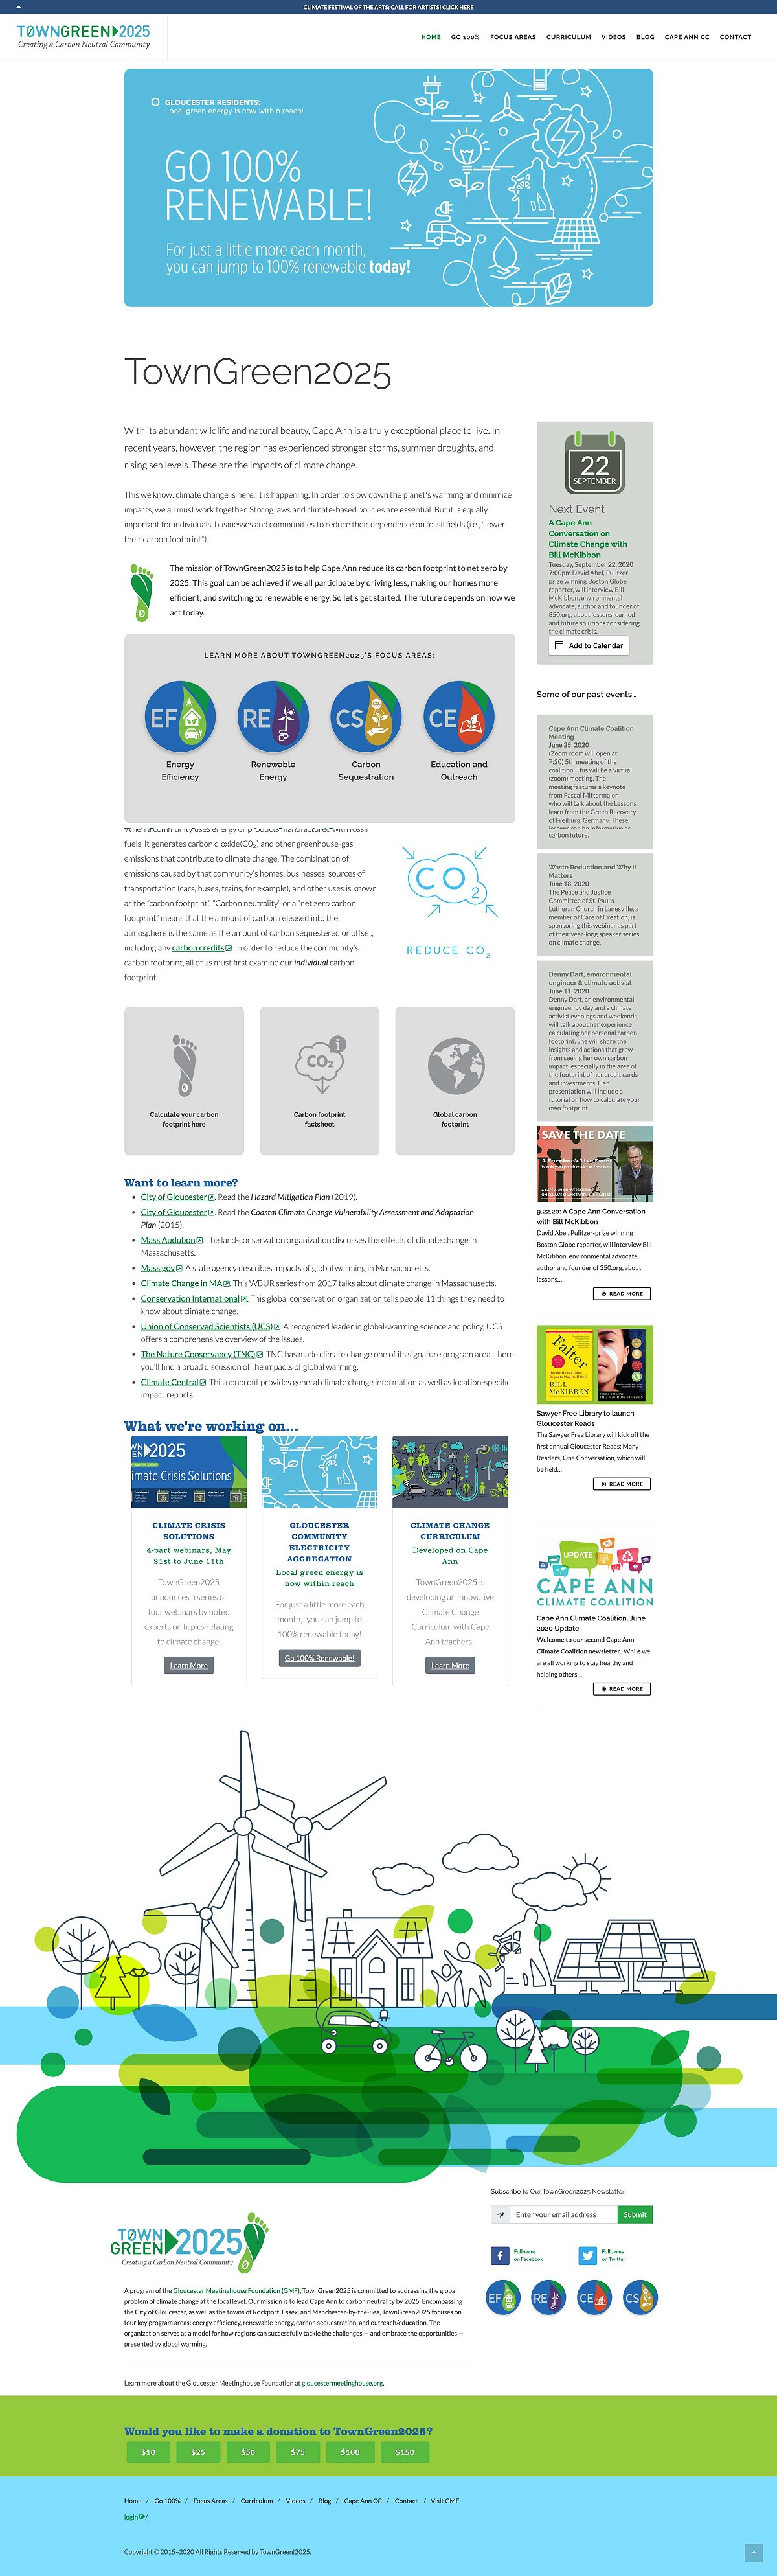 TownGreen 2025 Website